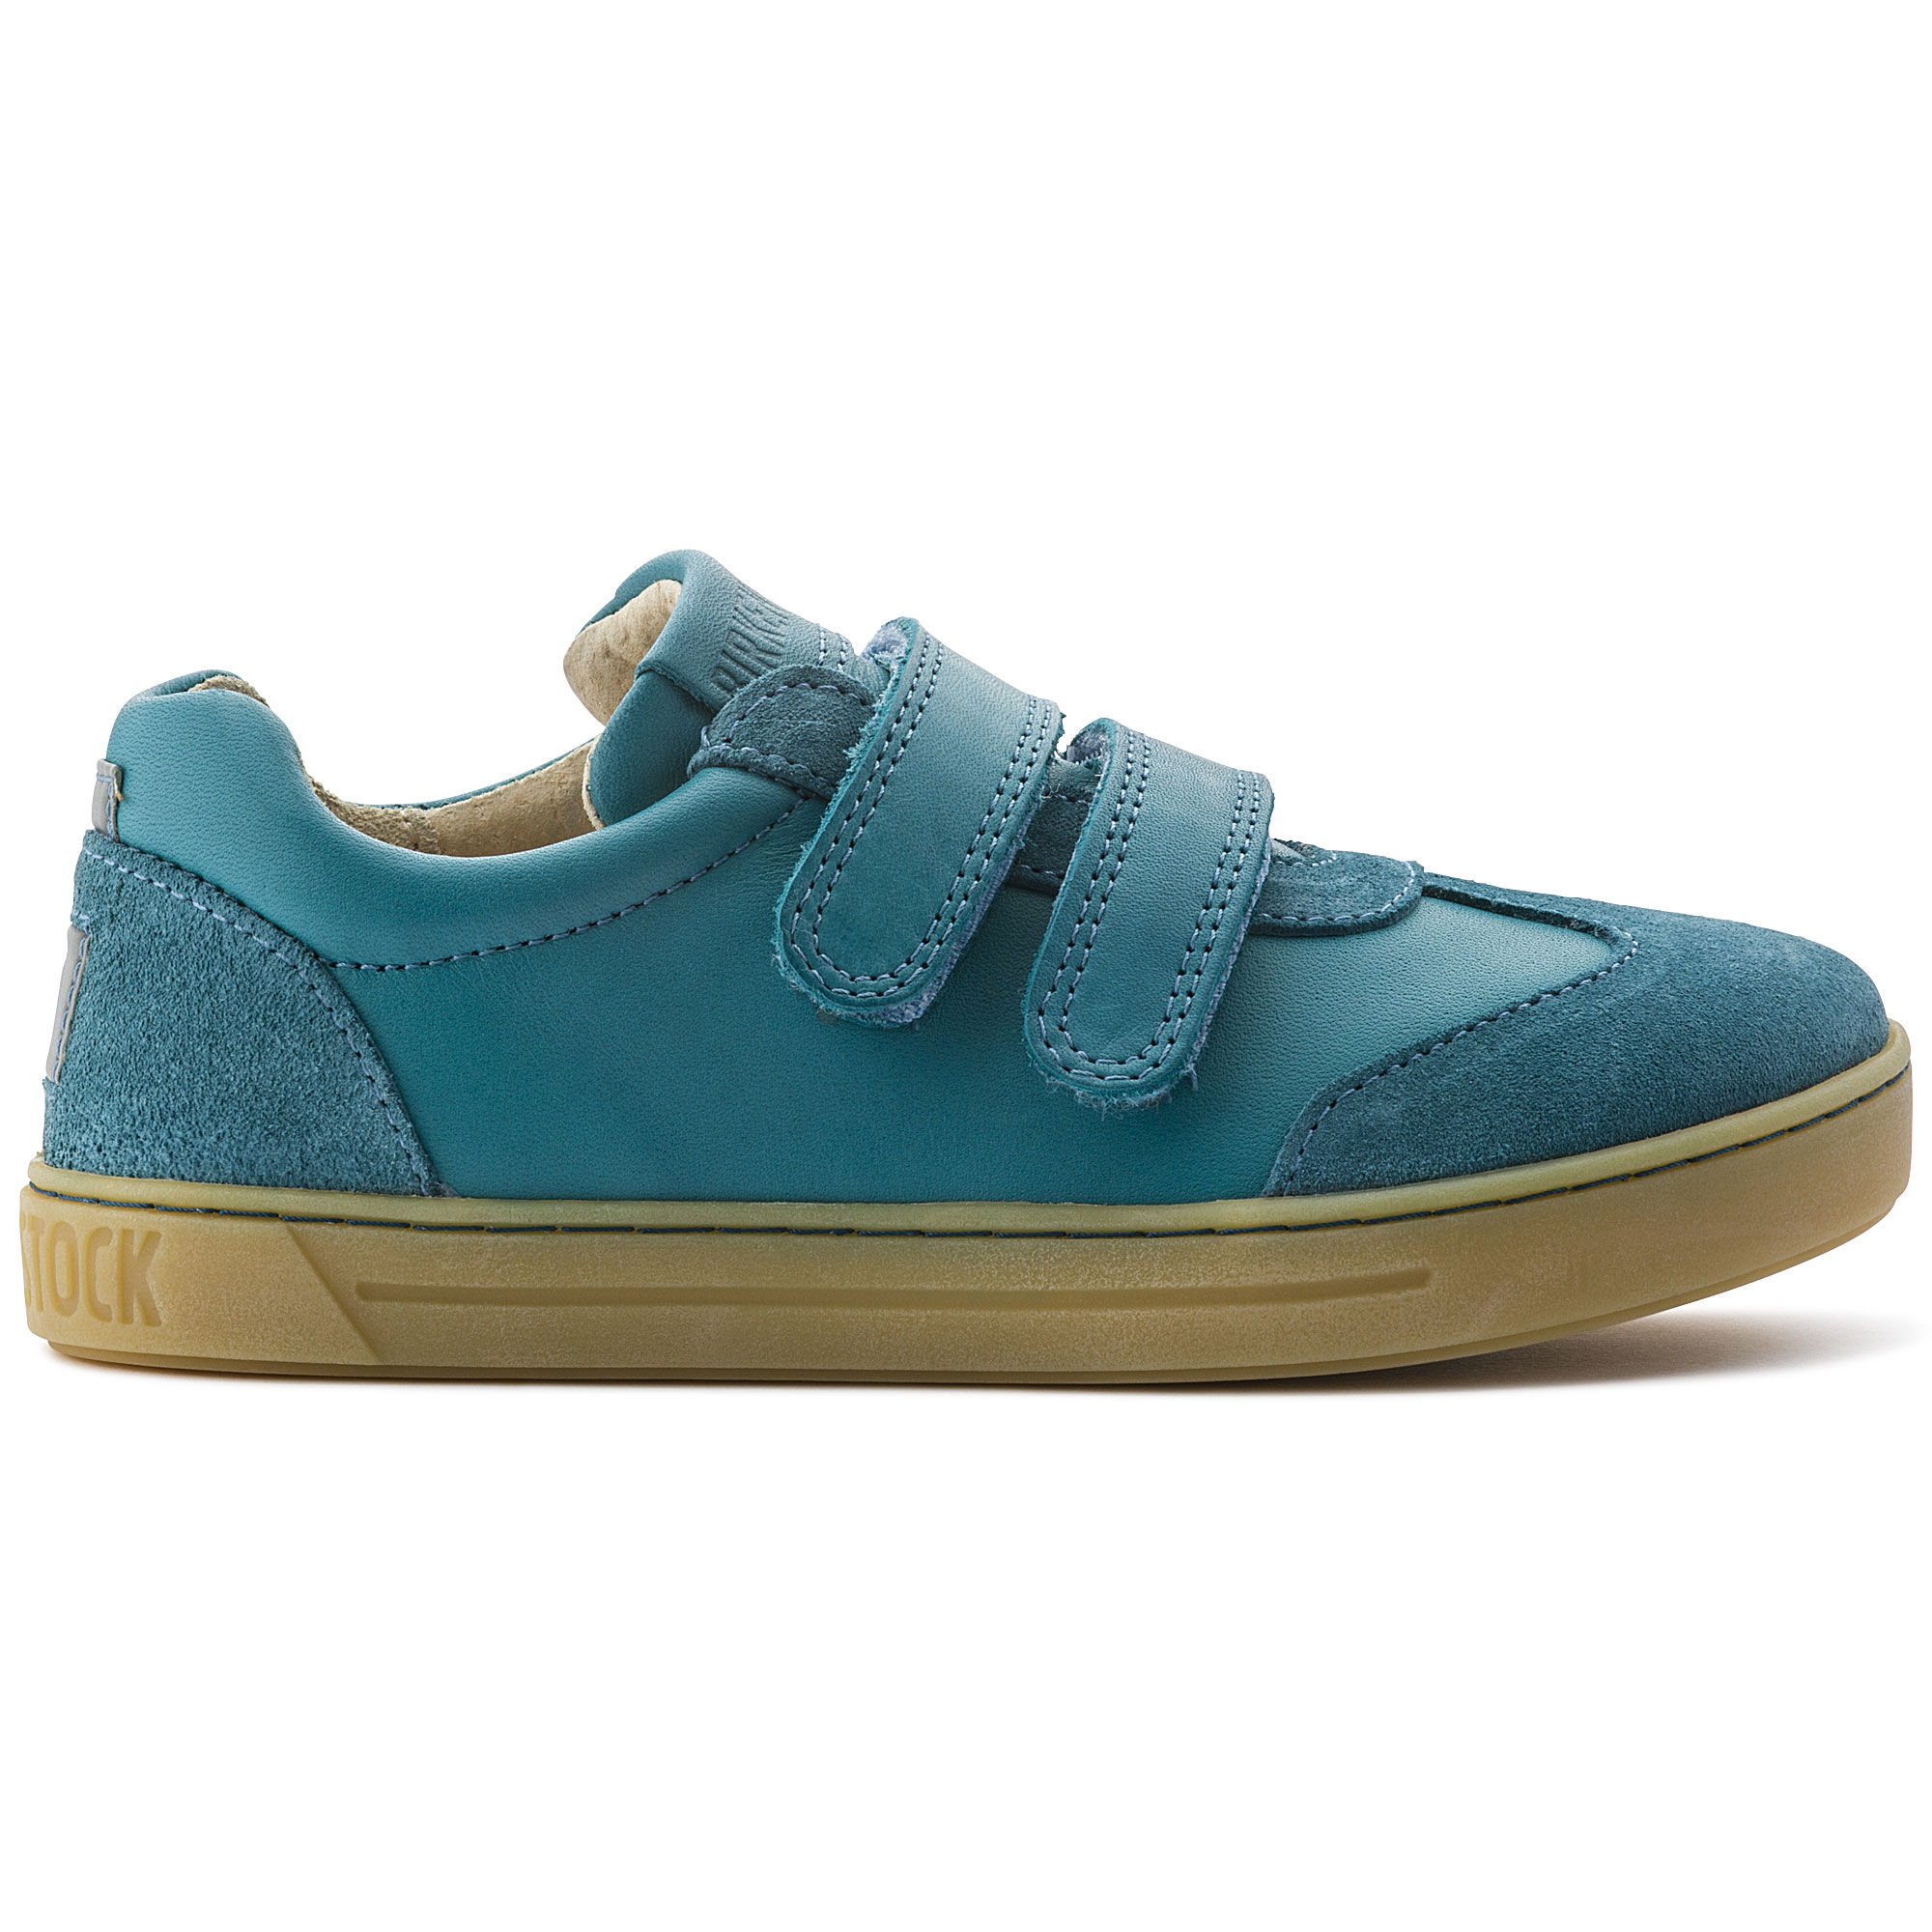 Davao Suede Leather Petrol